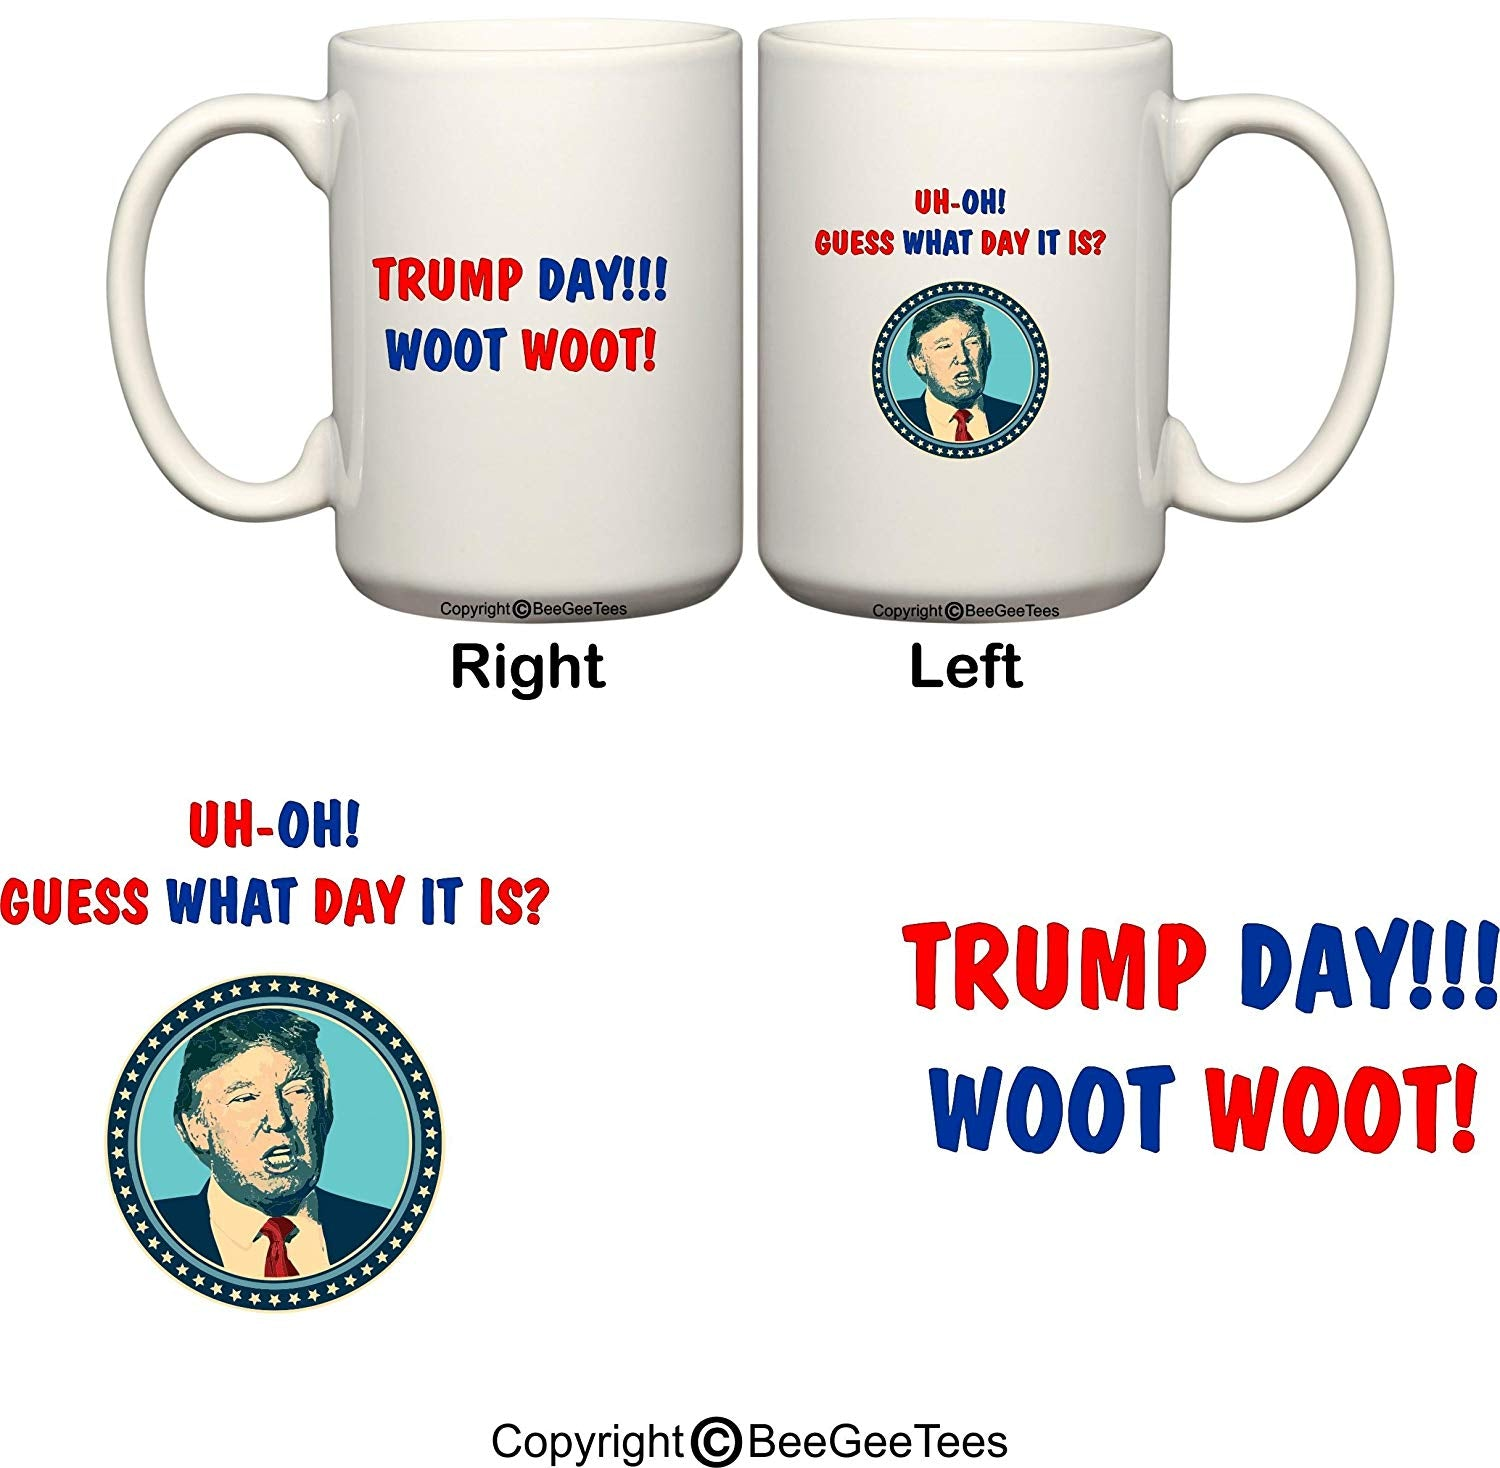 Donald Trump Day Mug Mid-Week Guess What Day It Is Wednesday Funny Commercial BeeGeeTees